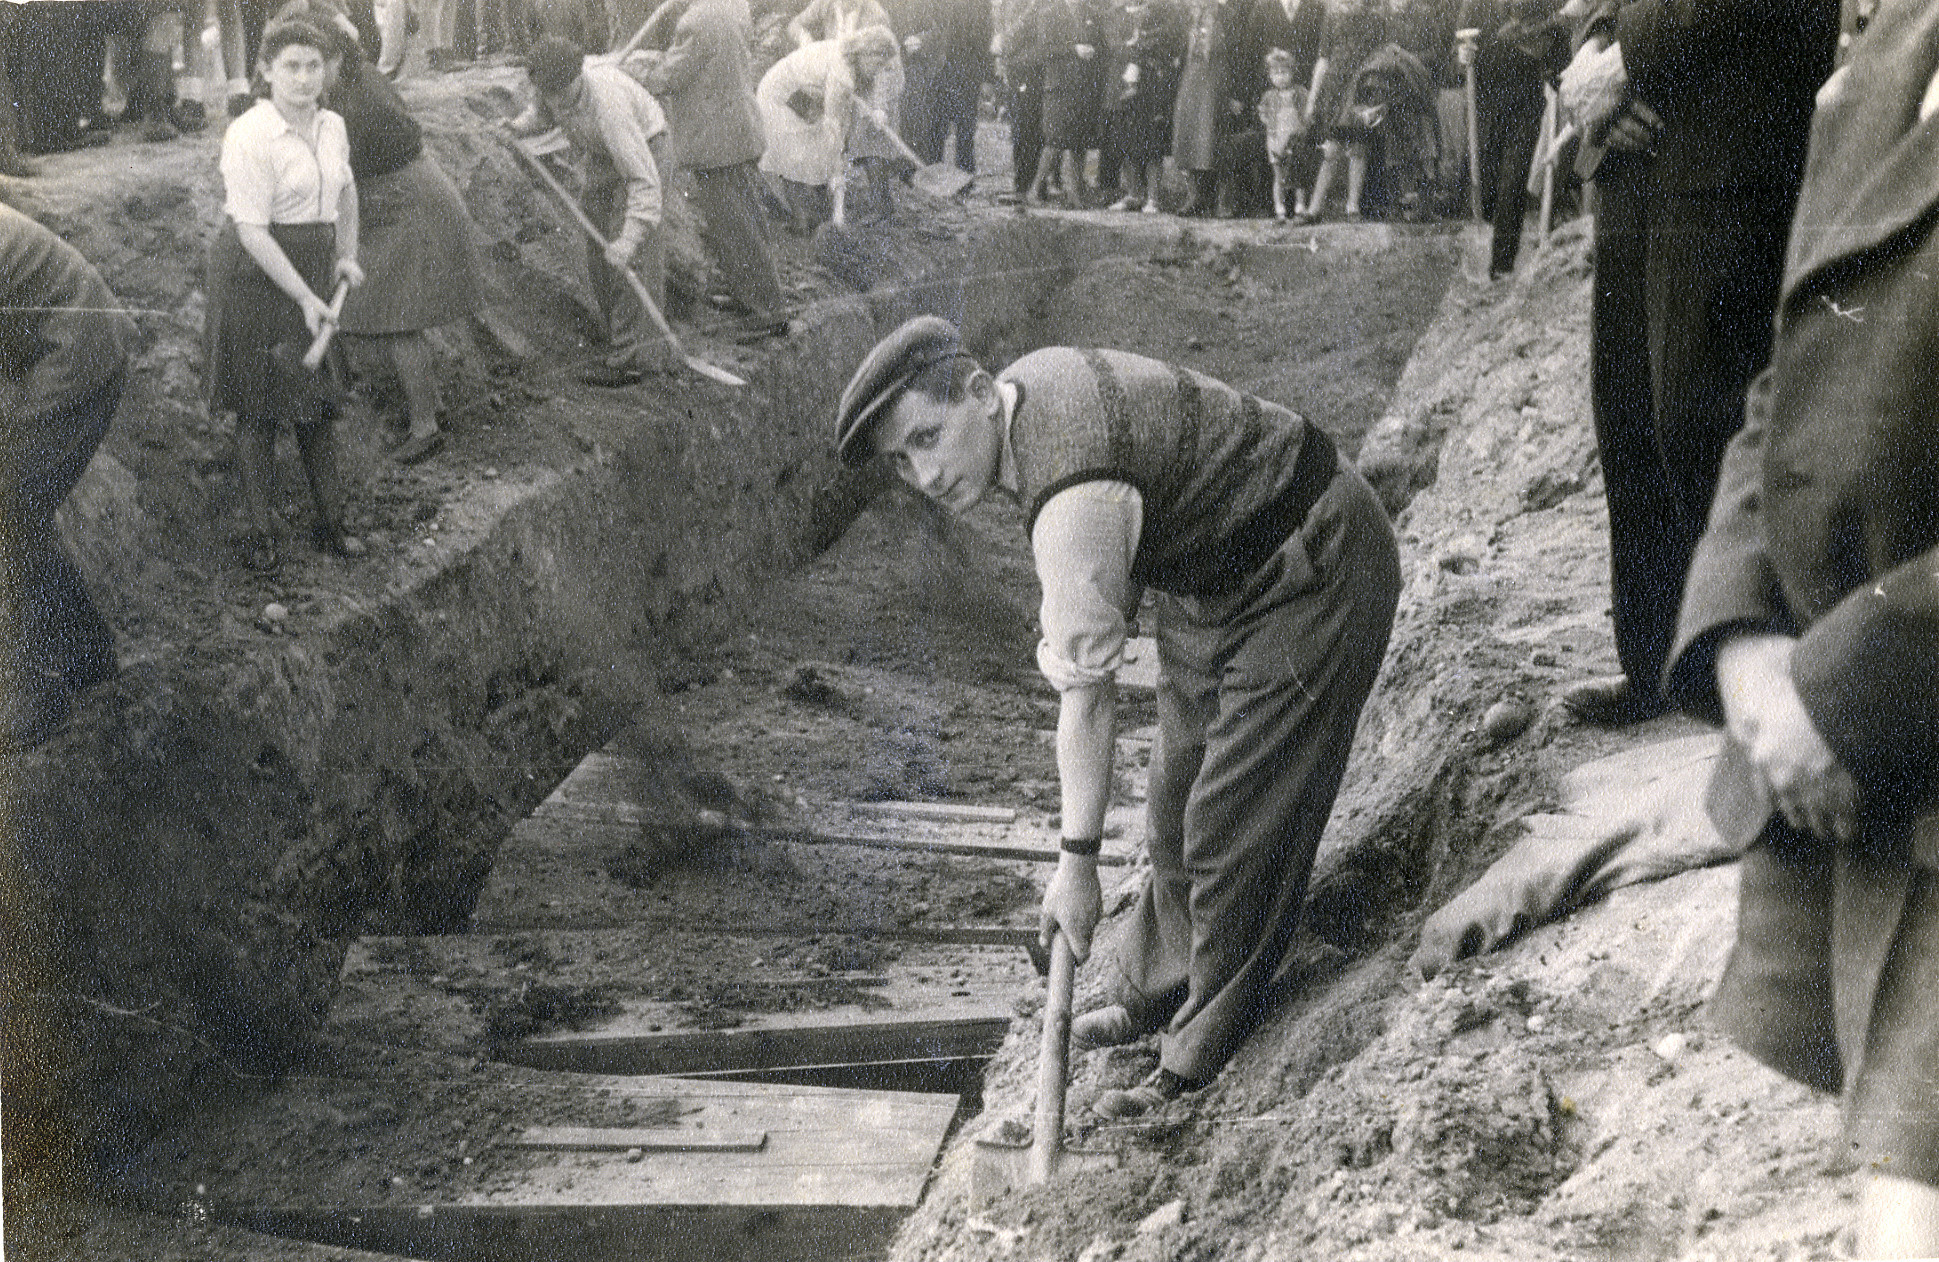 Civilians rebury the remains of victims of the Holocaust, in an unidentified location.